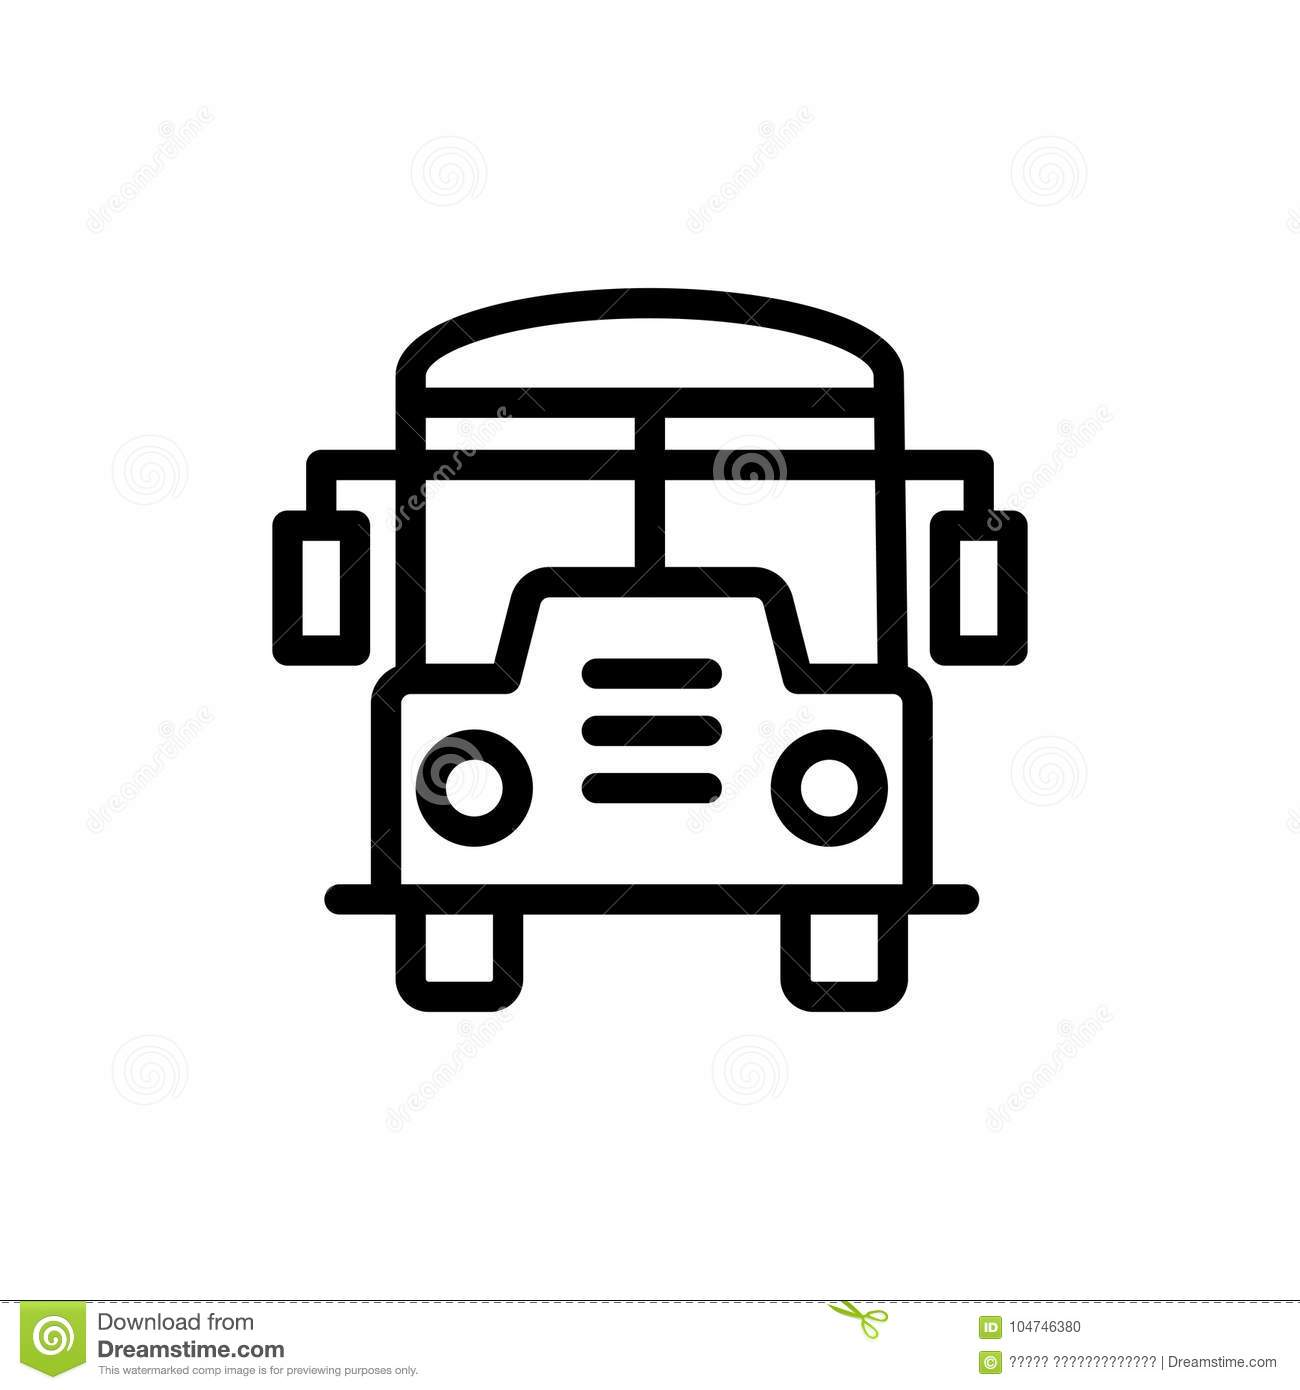 Bus Flat Icon Stock Vector Illustration Of Stop Arrival 104746380